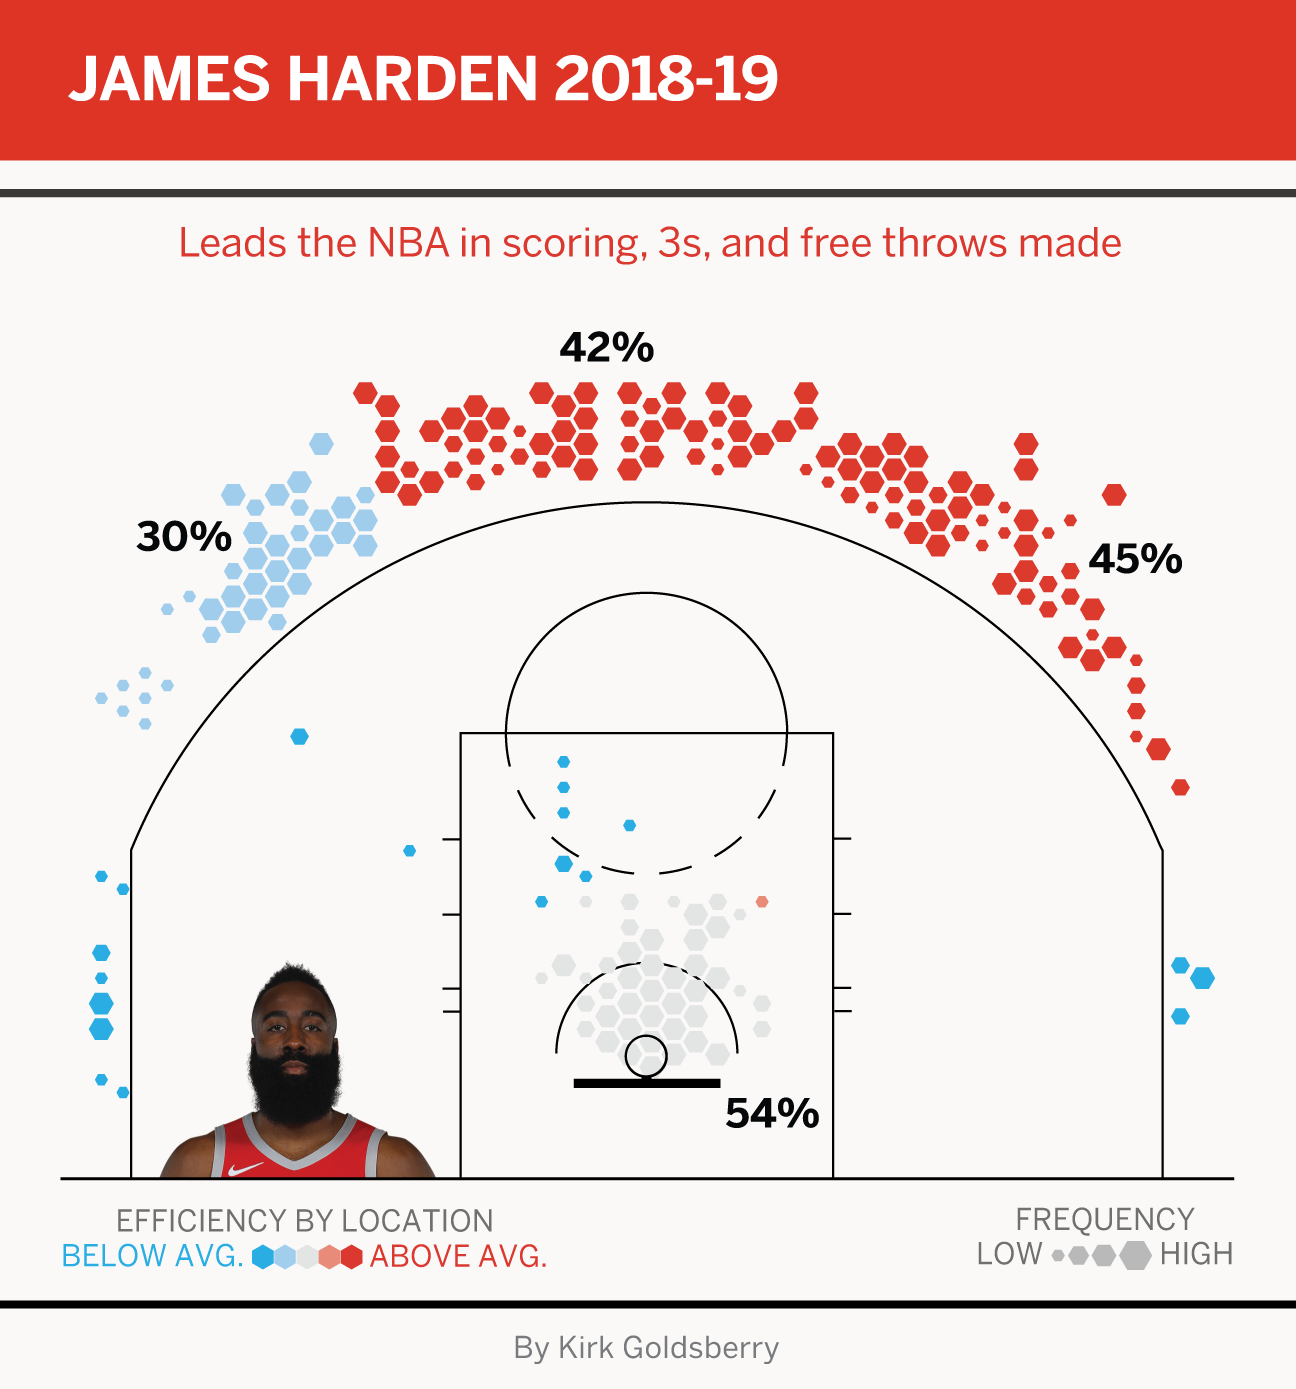 Nba2k19 James Harden: James Harden's Dominance Is Unprecedented And Undeniable